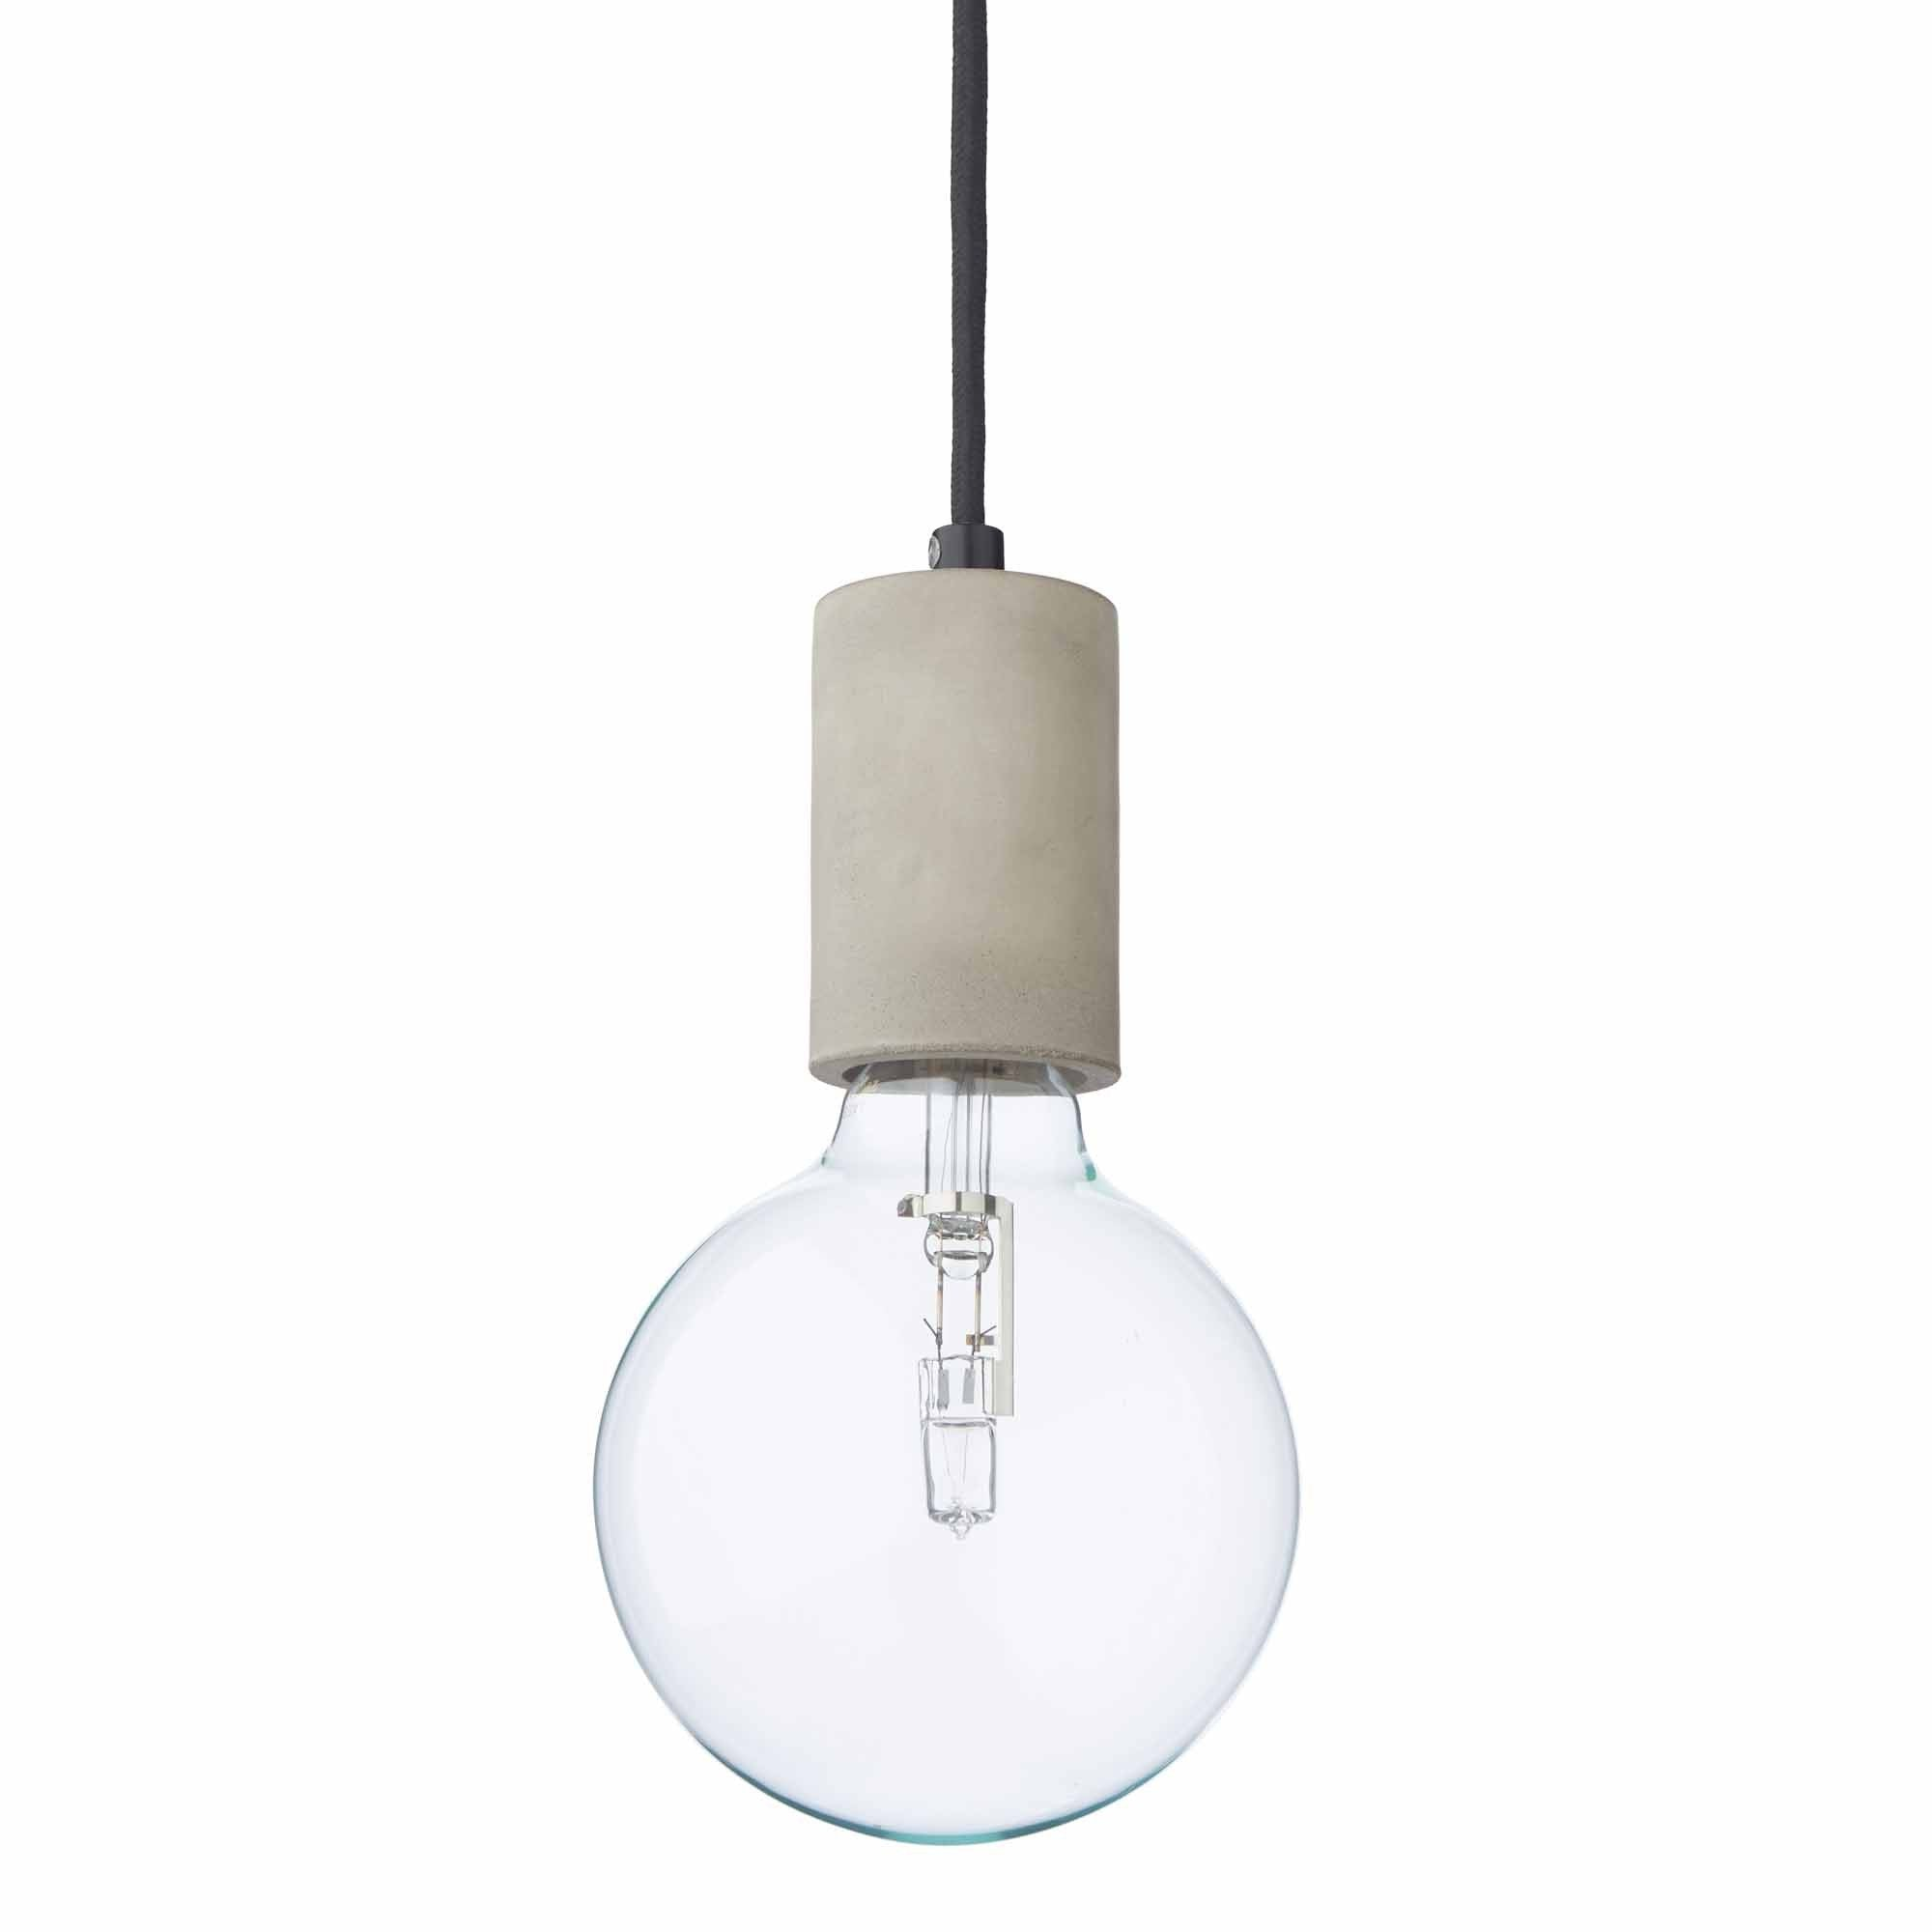 Salby pendant lamp, light grey, 100% concrete